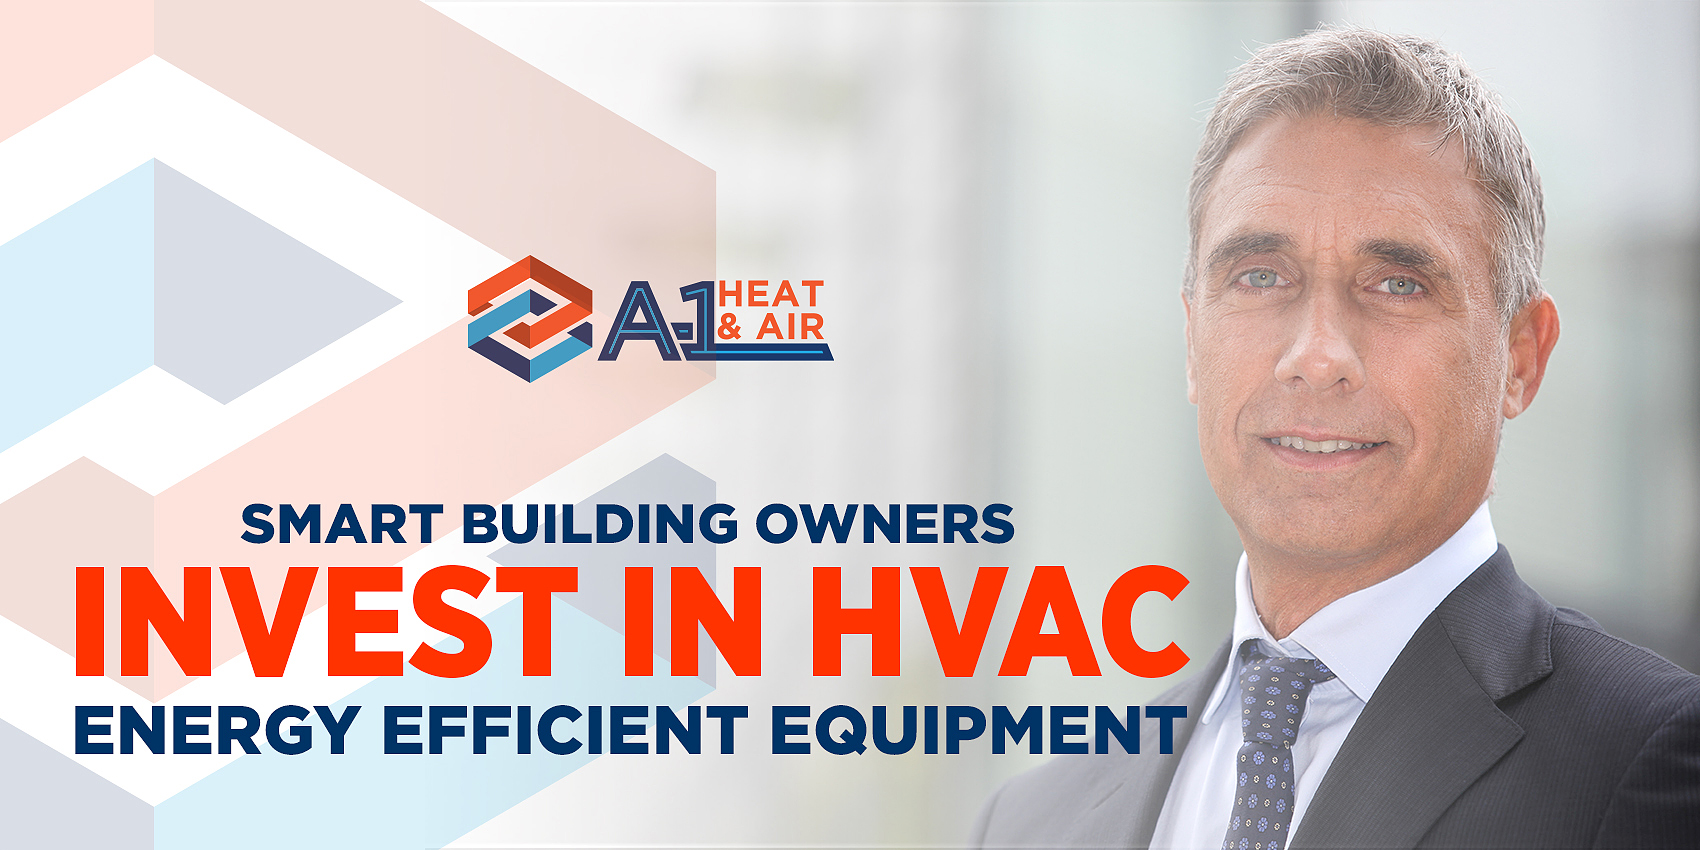 Smart Building Owners Invest In HVAC Energy Efficient Equipment